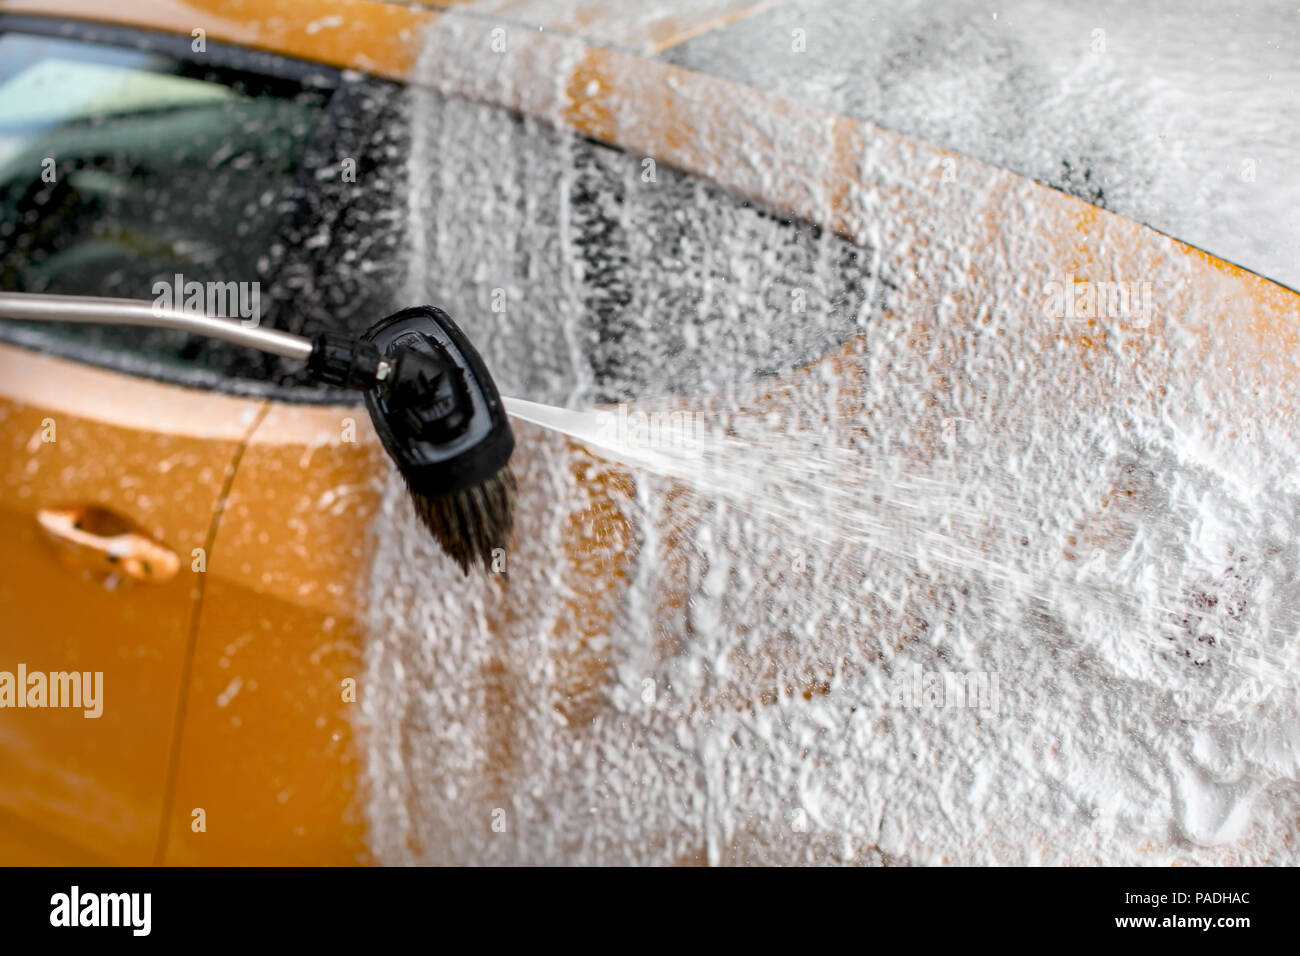 Shampoo and foam being sprayed on yellow car side, cleaned at carwash. Stock Photo